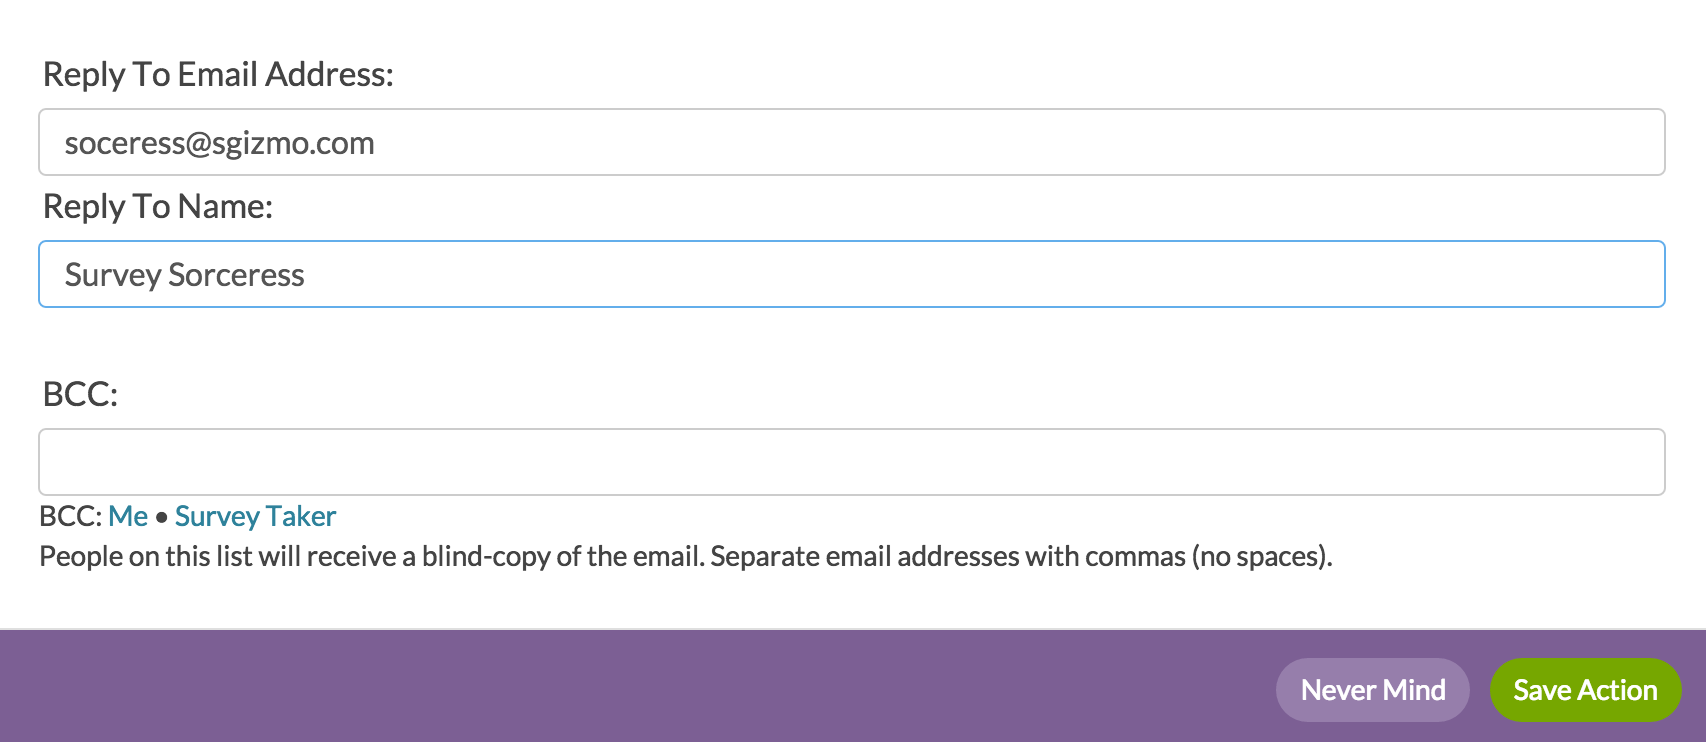 send email action send an autoresponse email surveygizmo help to ensure your emails get where they are going we recommend leaving the sender s email address as noreply surveygizmo com and instead use the reply to email